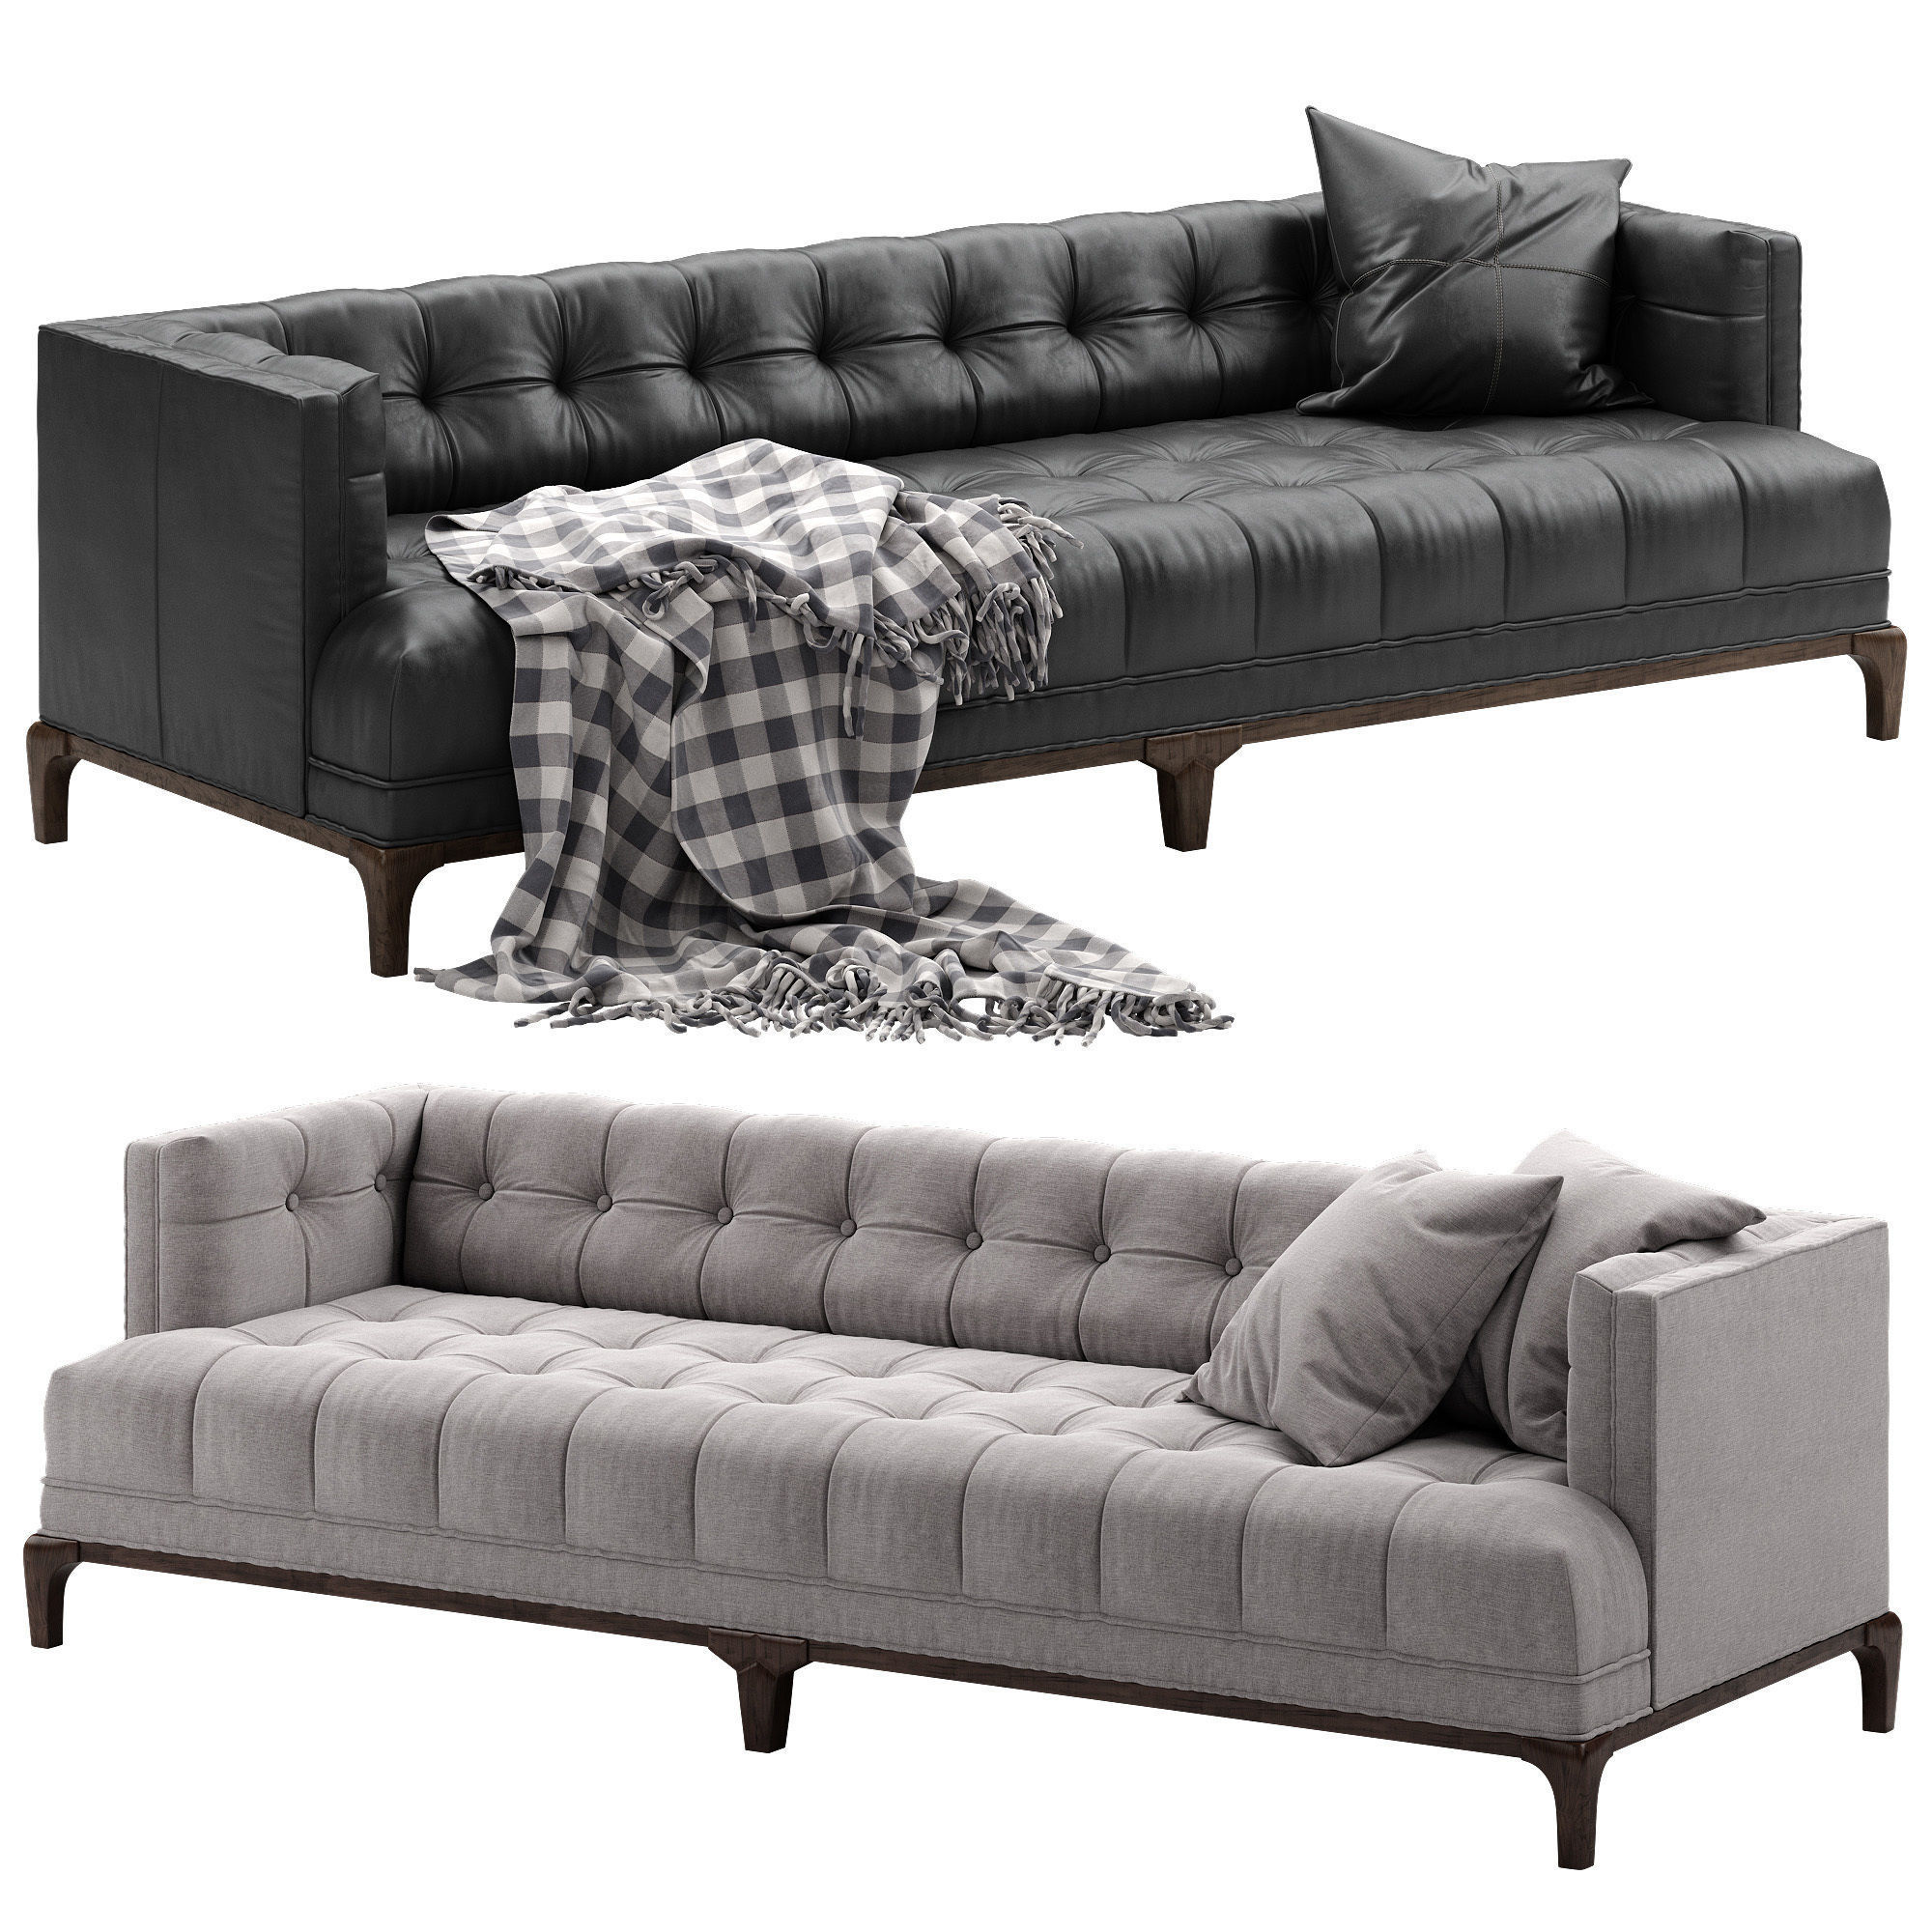 Quality Of Crate And Barrel Furniture: Crate And Barrel Dylan Sofa 3D Model